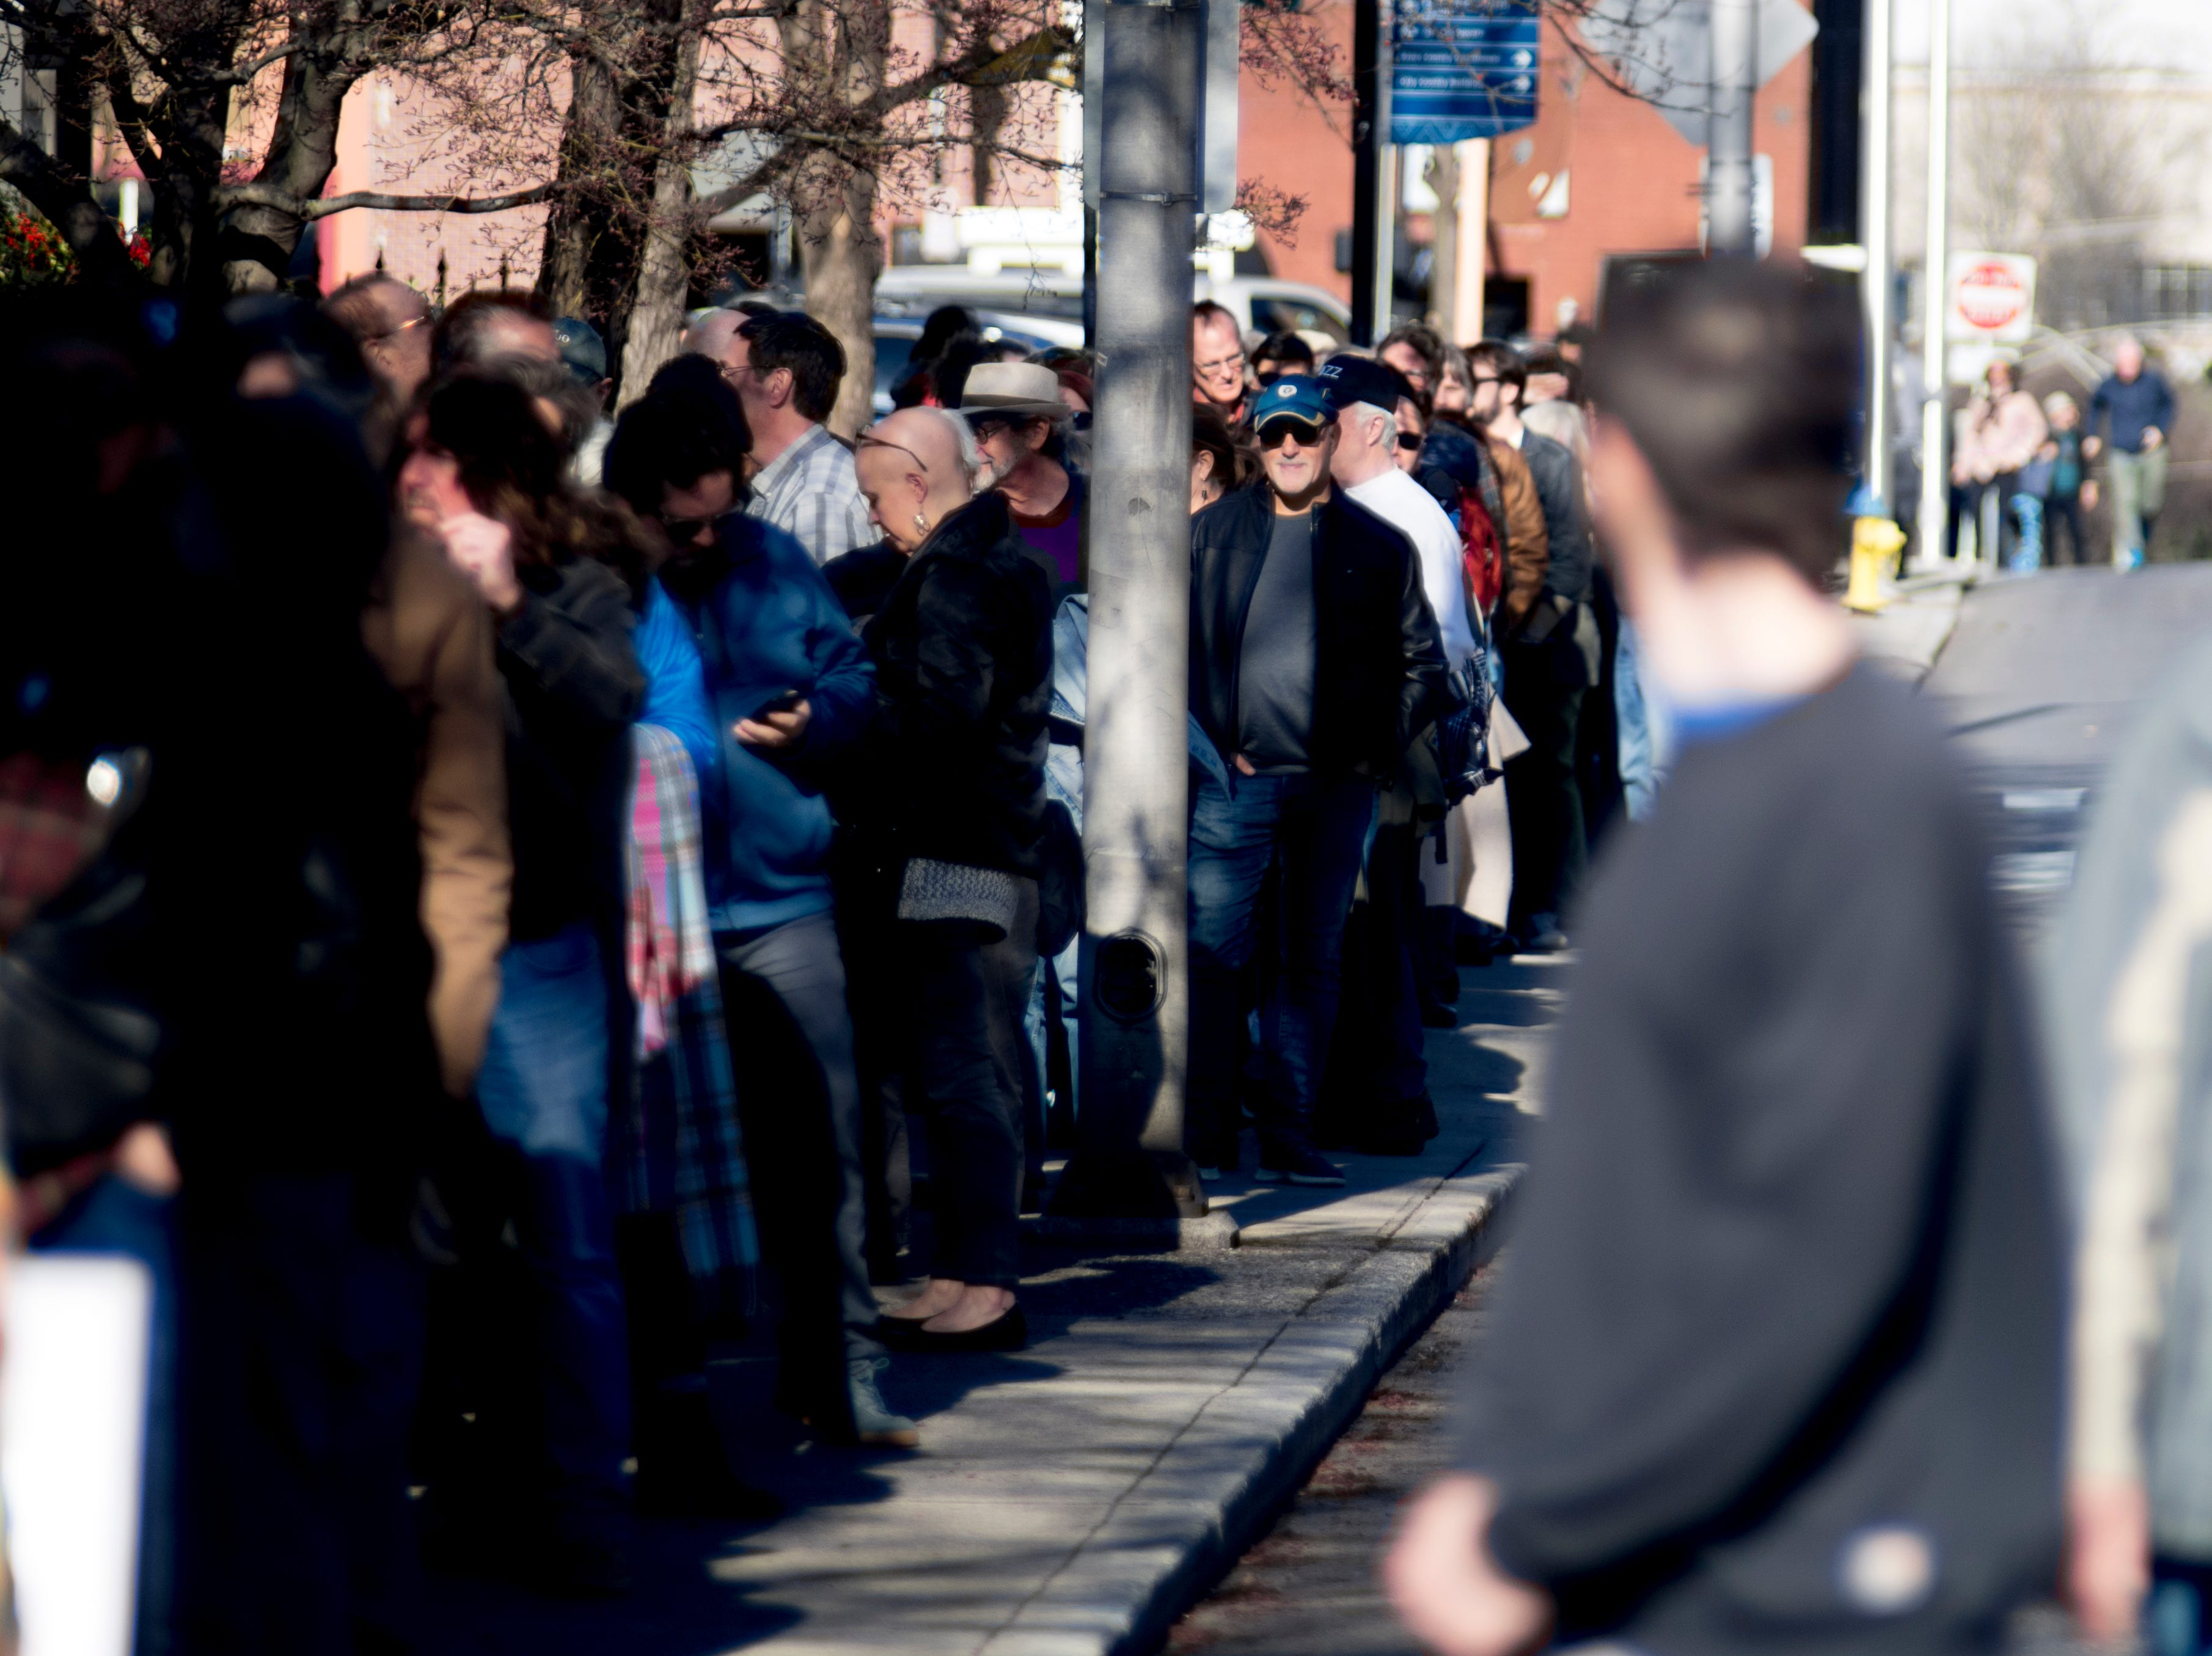 Fans line up to attend Ralph Towner at St. John's Episcopal Church during Big Ears Festival 2019 in Knoxville, Tennessee on Friday, March 22, 2019.